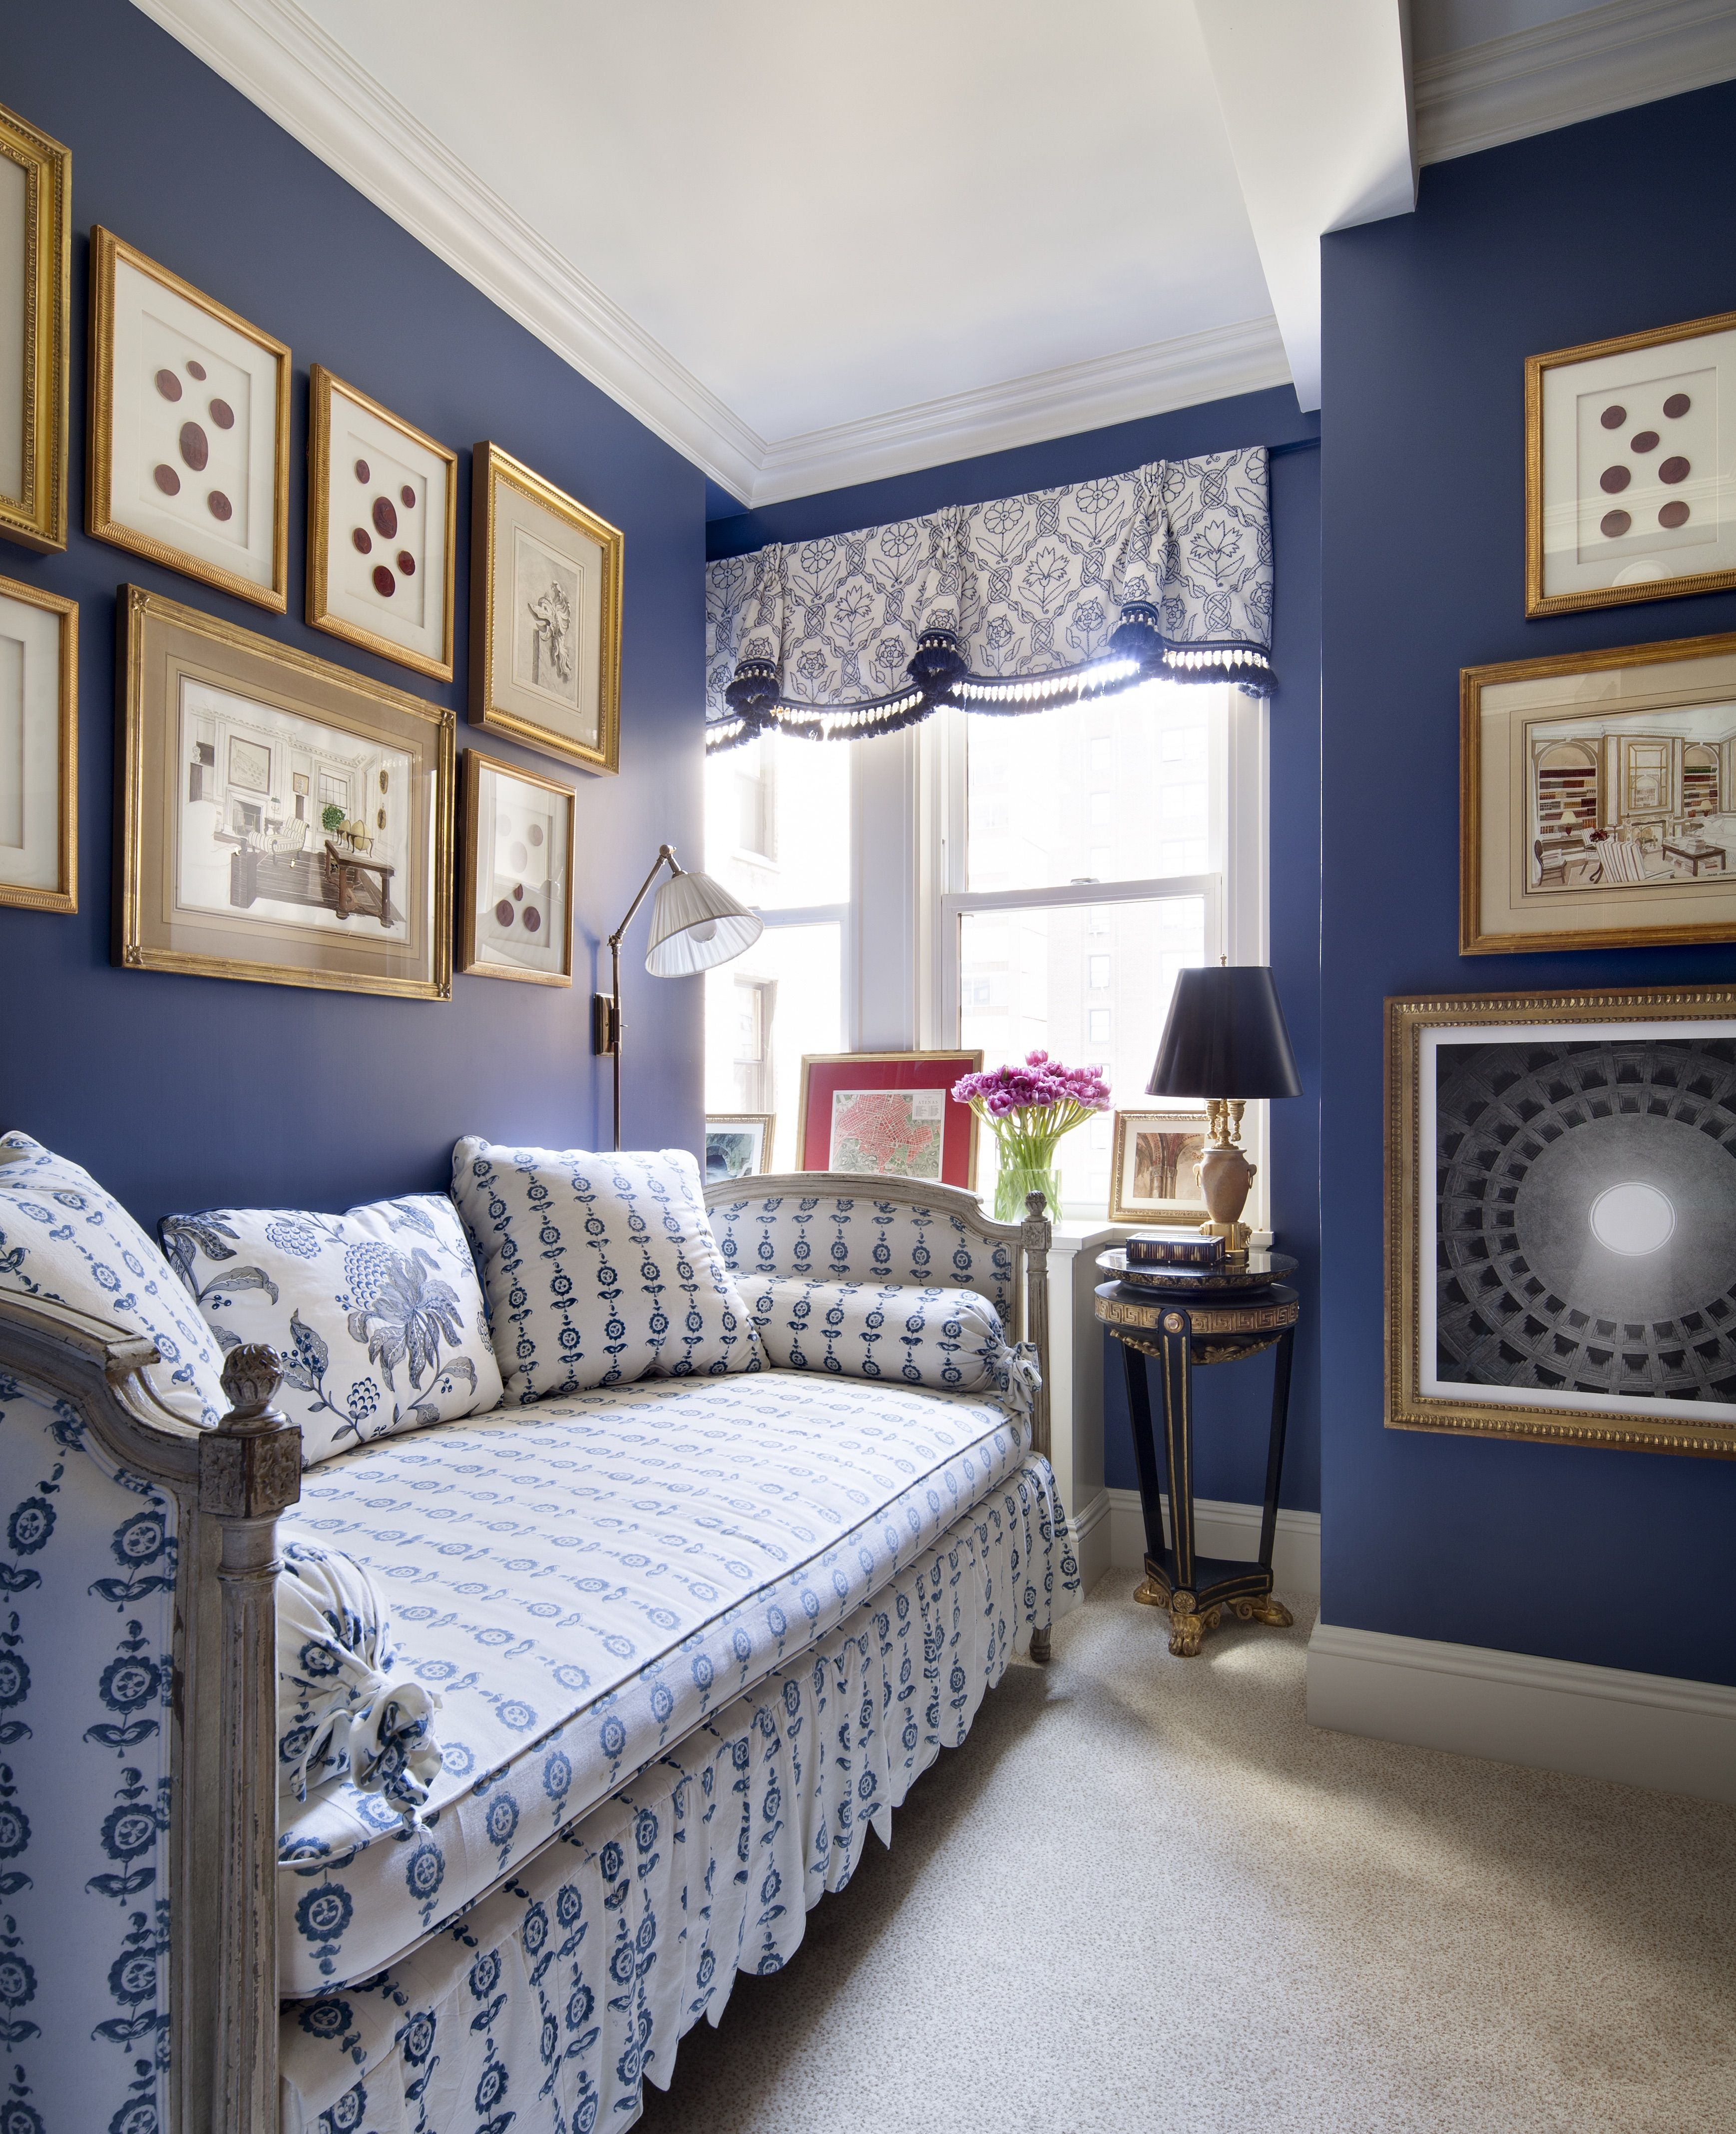 Principal bedroom in an historic home with an interior inspired by - A List Interior Designers From Elle Decor Top Designers For Home Interiors